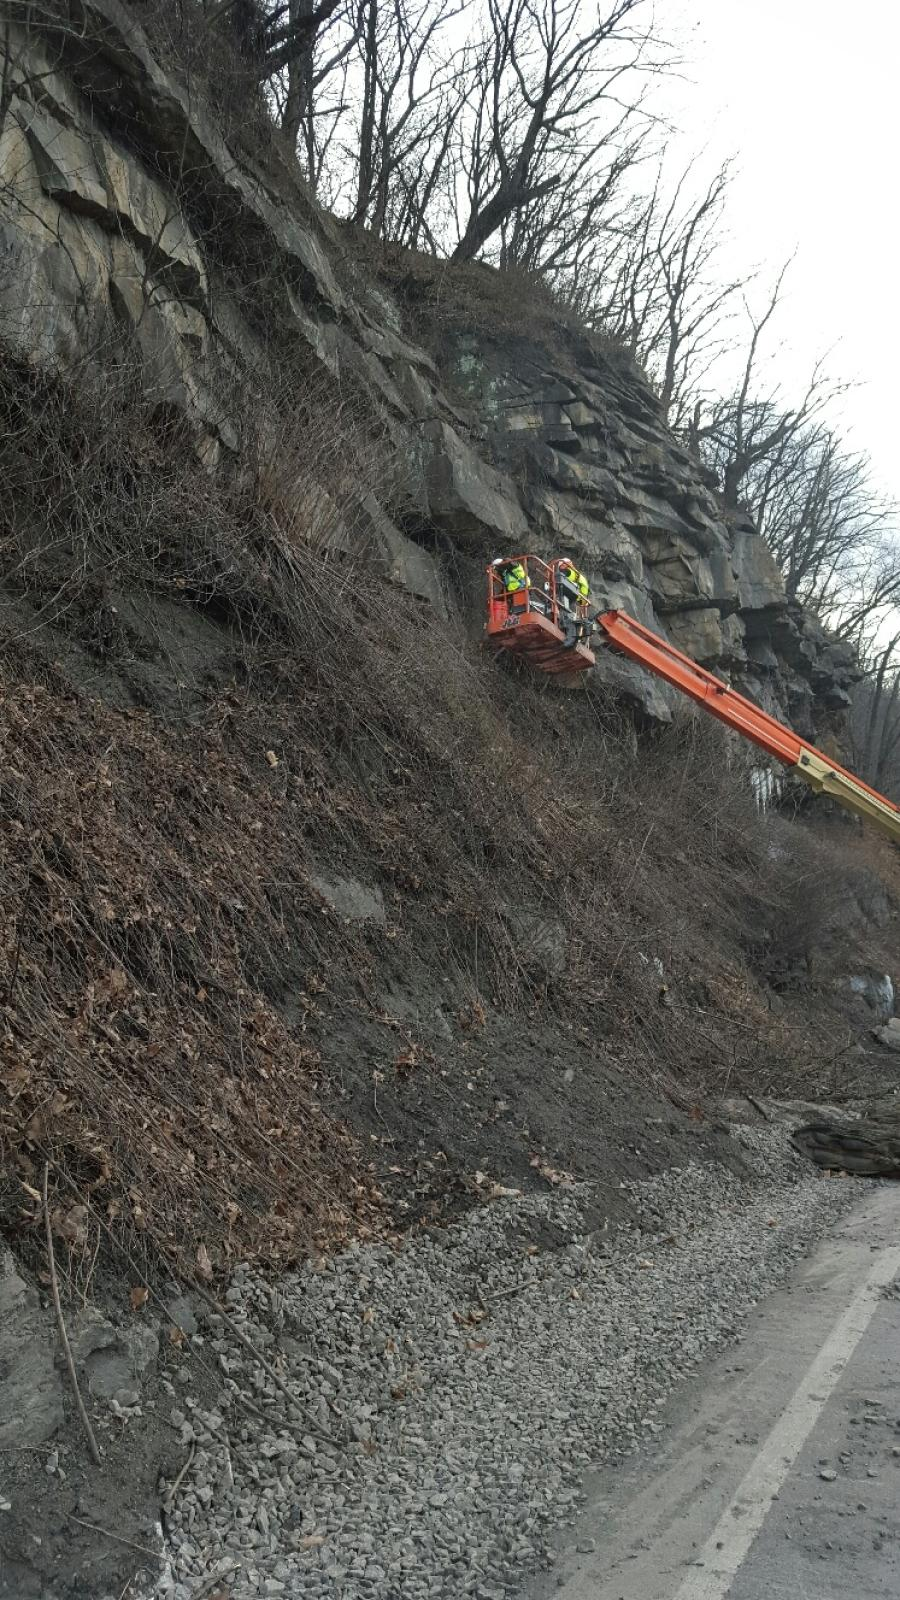 The SHA started a $2.7 million project to stabilize the rock face on Thursday, Jan. 28. The repair is expected to take up to 20 weeks, weather permitting.